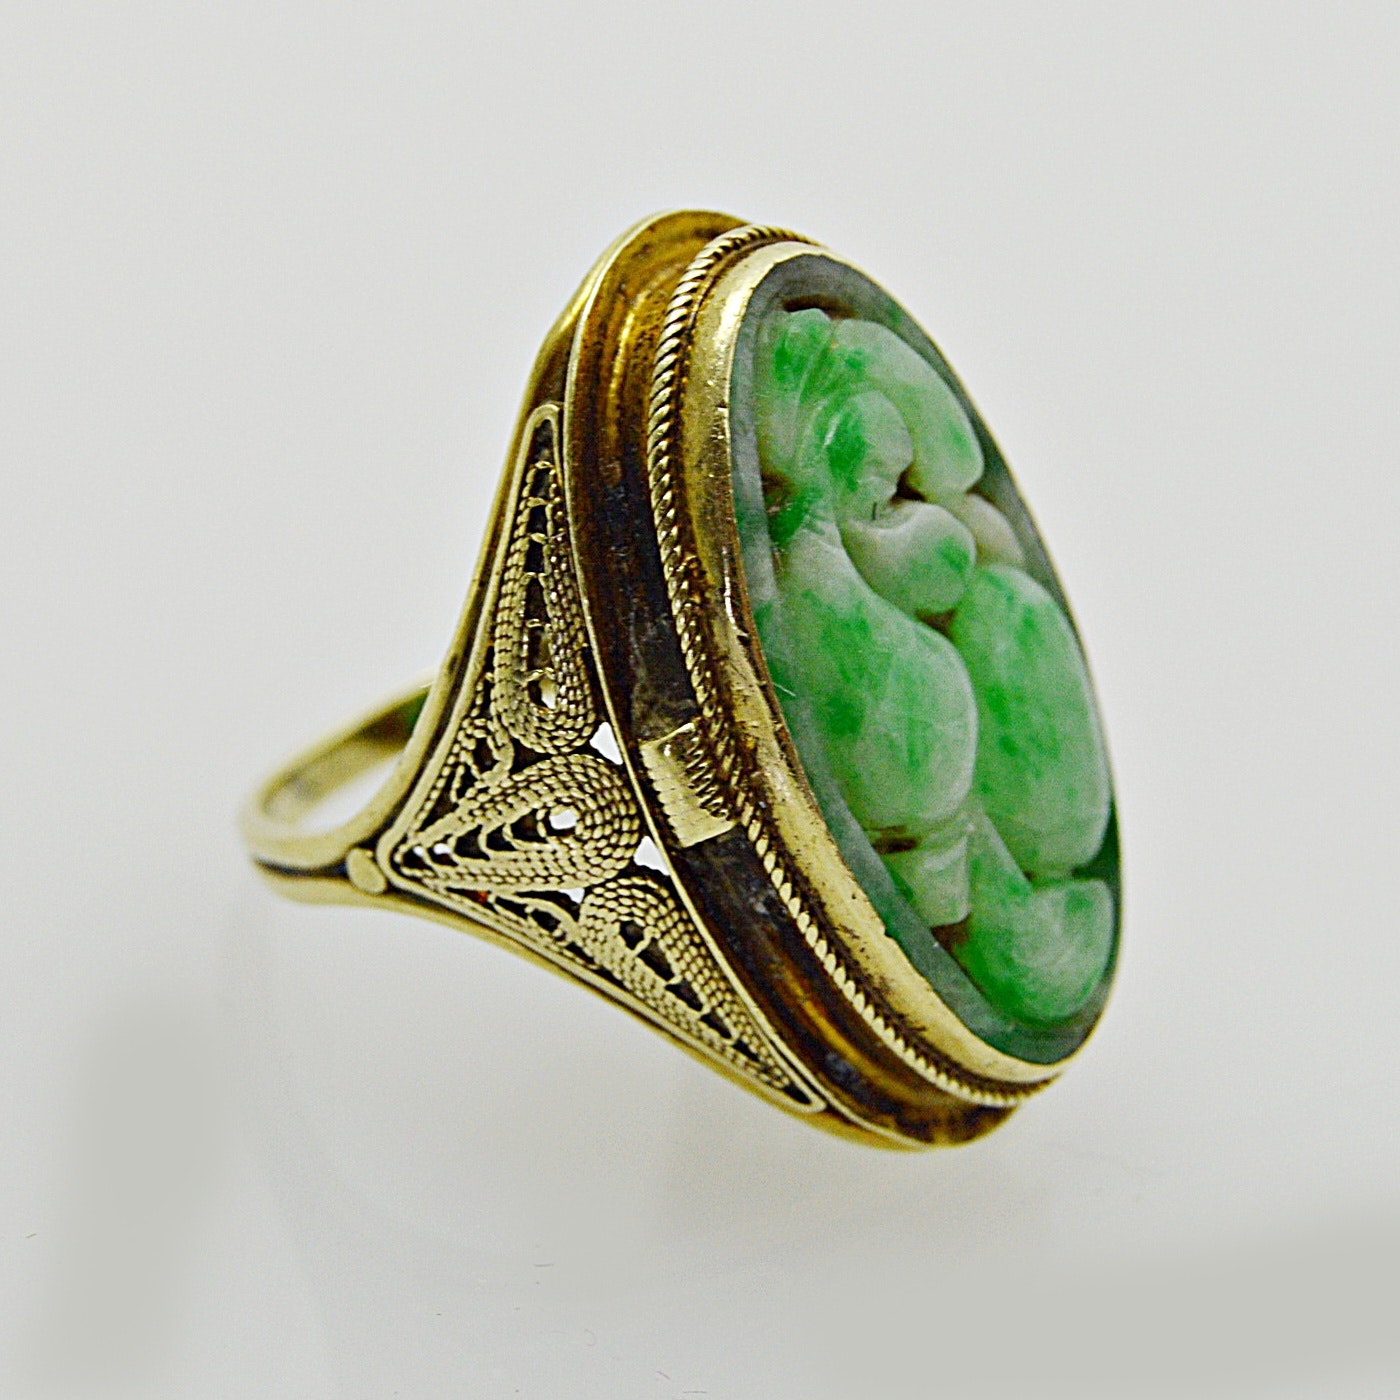 Vintage 14K Yellow Gold and Carved Jadeite Ring